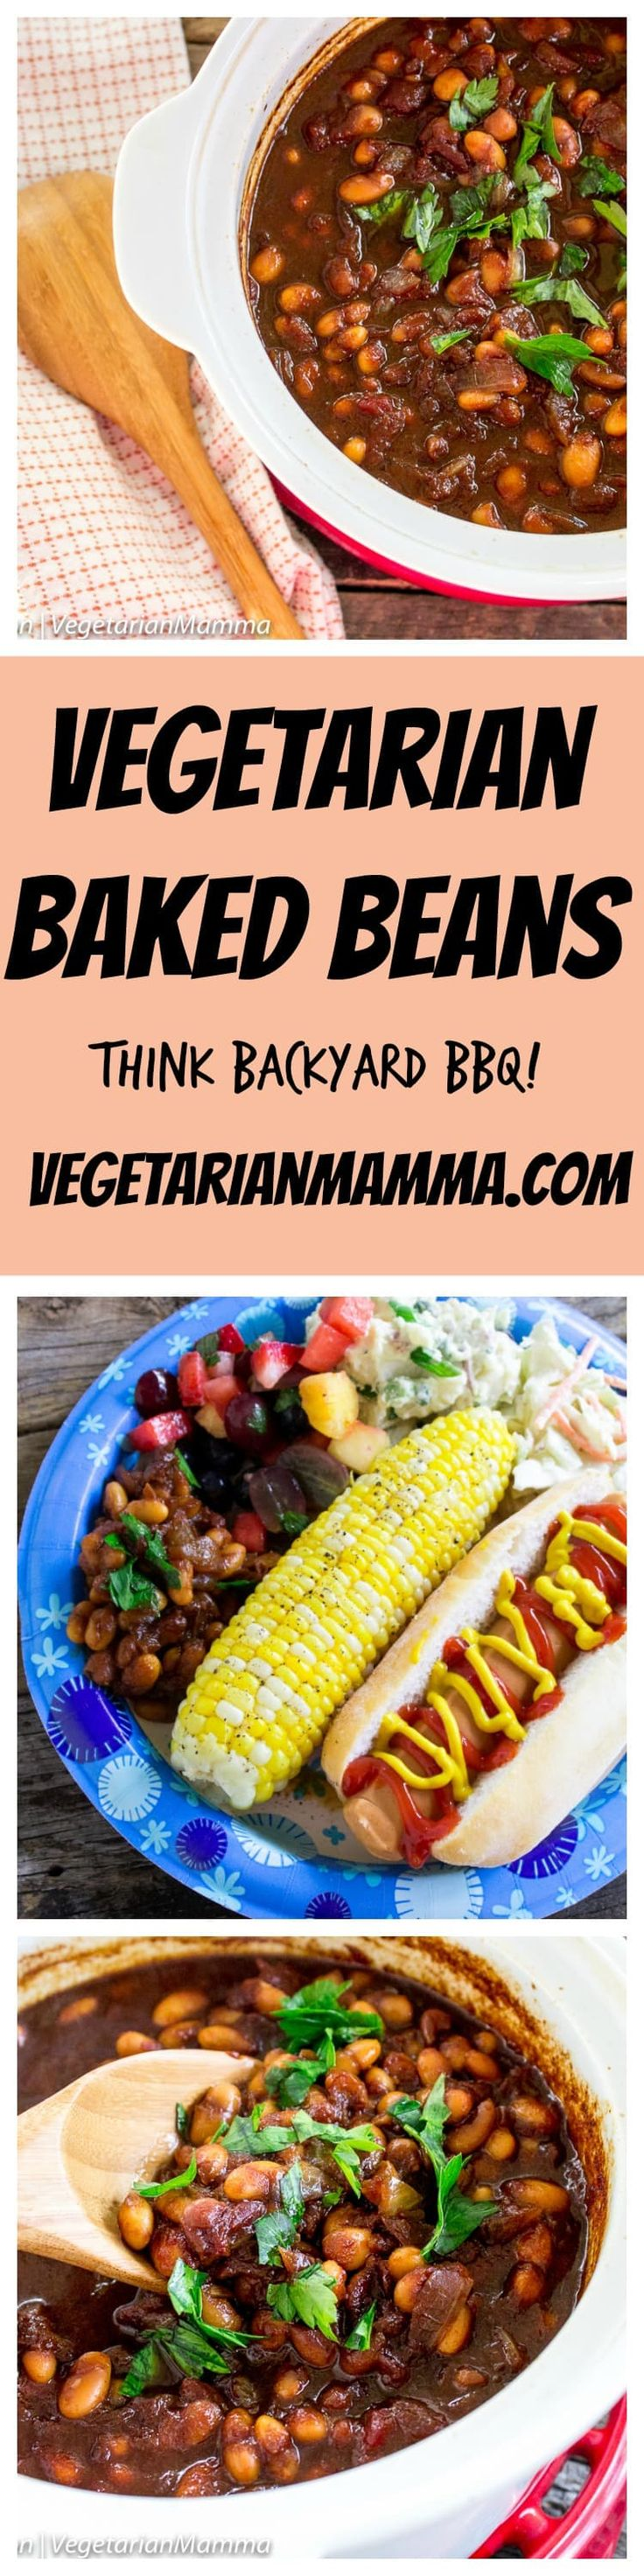 Did somebody say Vegetarian Baked Beans? Looking for the ultimate addition to your backyard BBQ menu? Beans are a MUST for your BBQ plate!  @DixieProduct ad #NeverDoDishes  #NoDirtyDishesDay